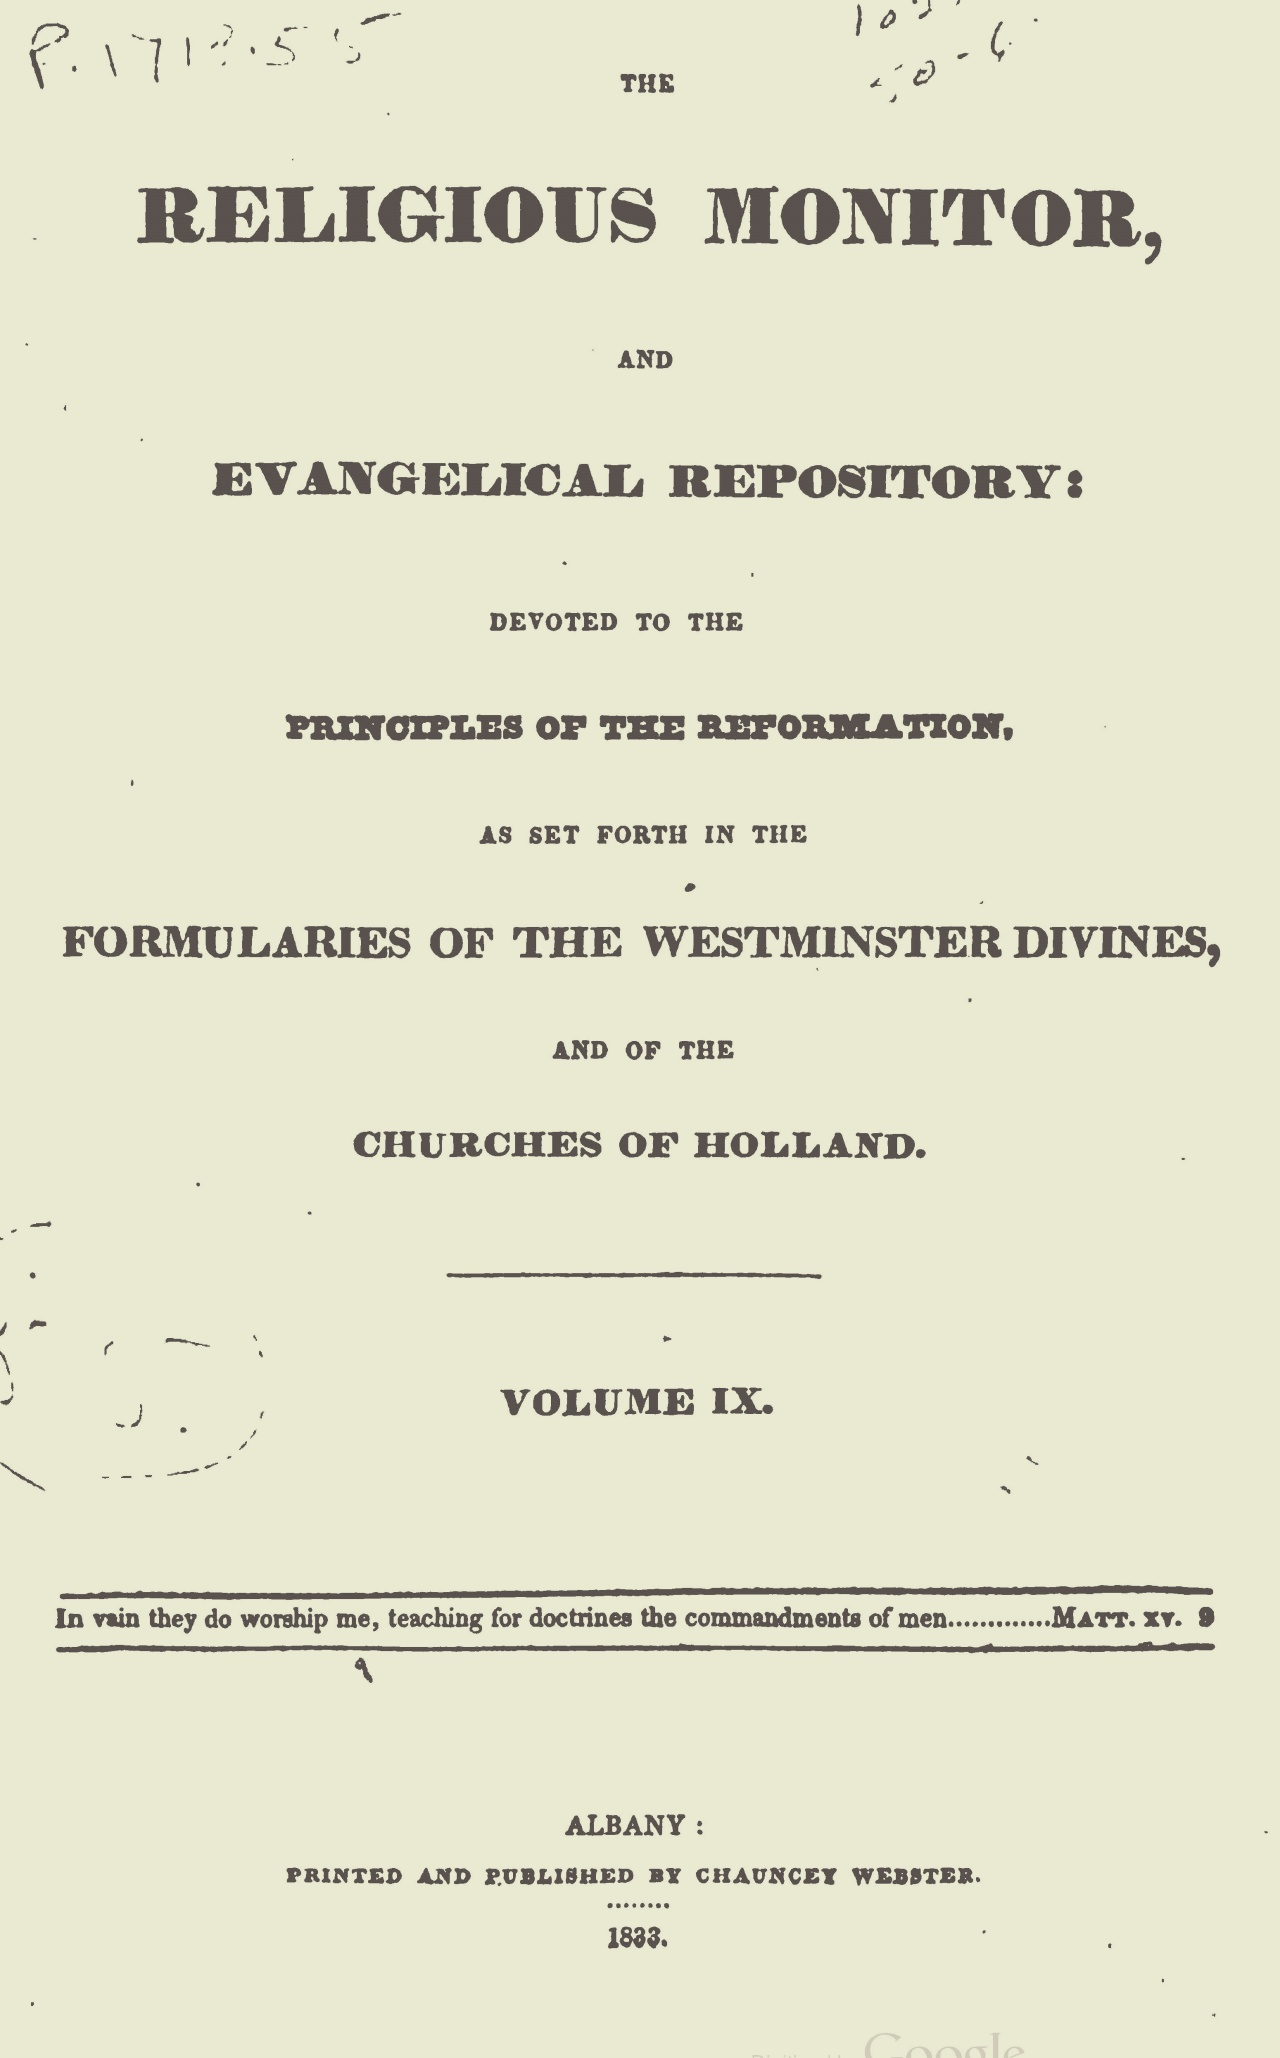 Webster, Chauncey, The Religious Monitor, and Evangelical Repository, Vol. 9 Title Page.jpg